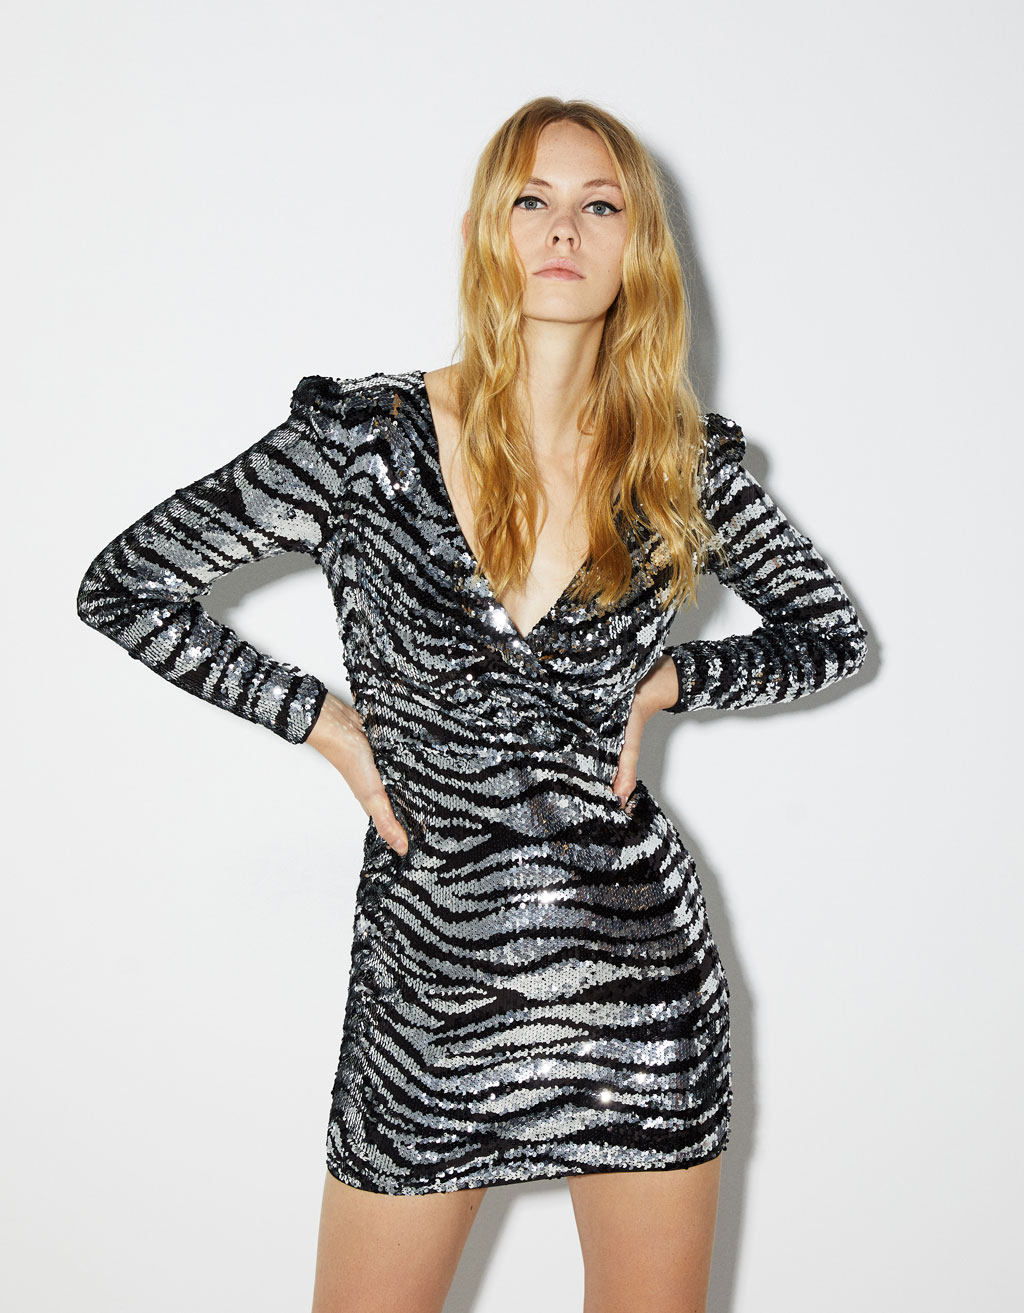 Sequinned zebra print dress